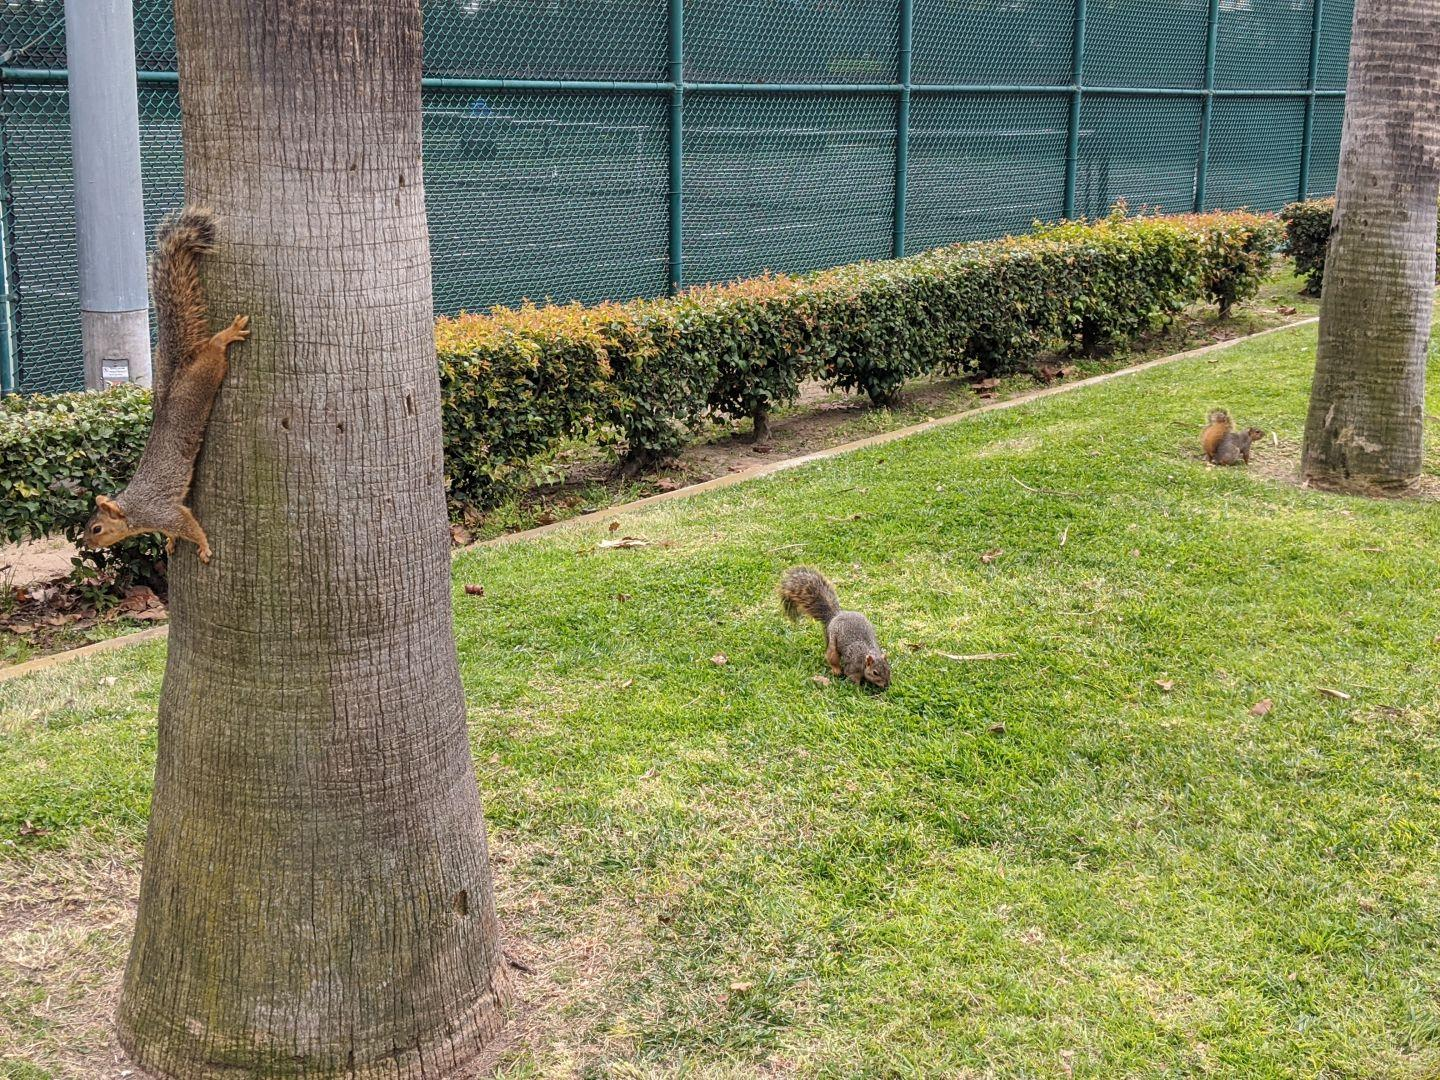 Trio of #squirrels in the park.